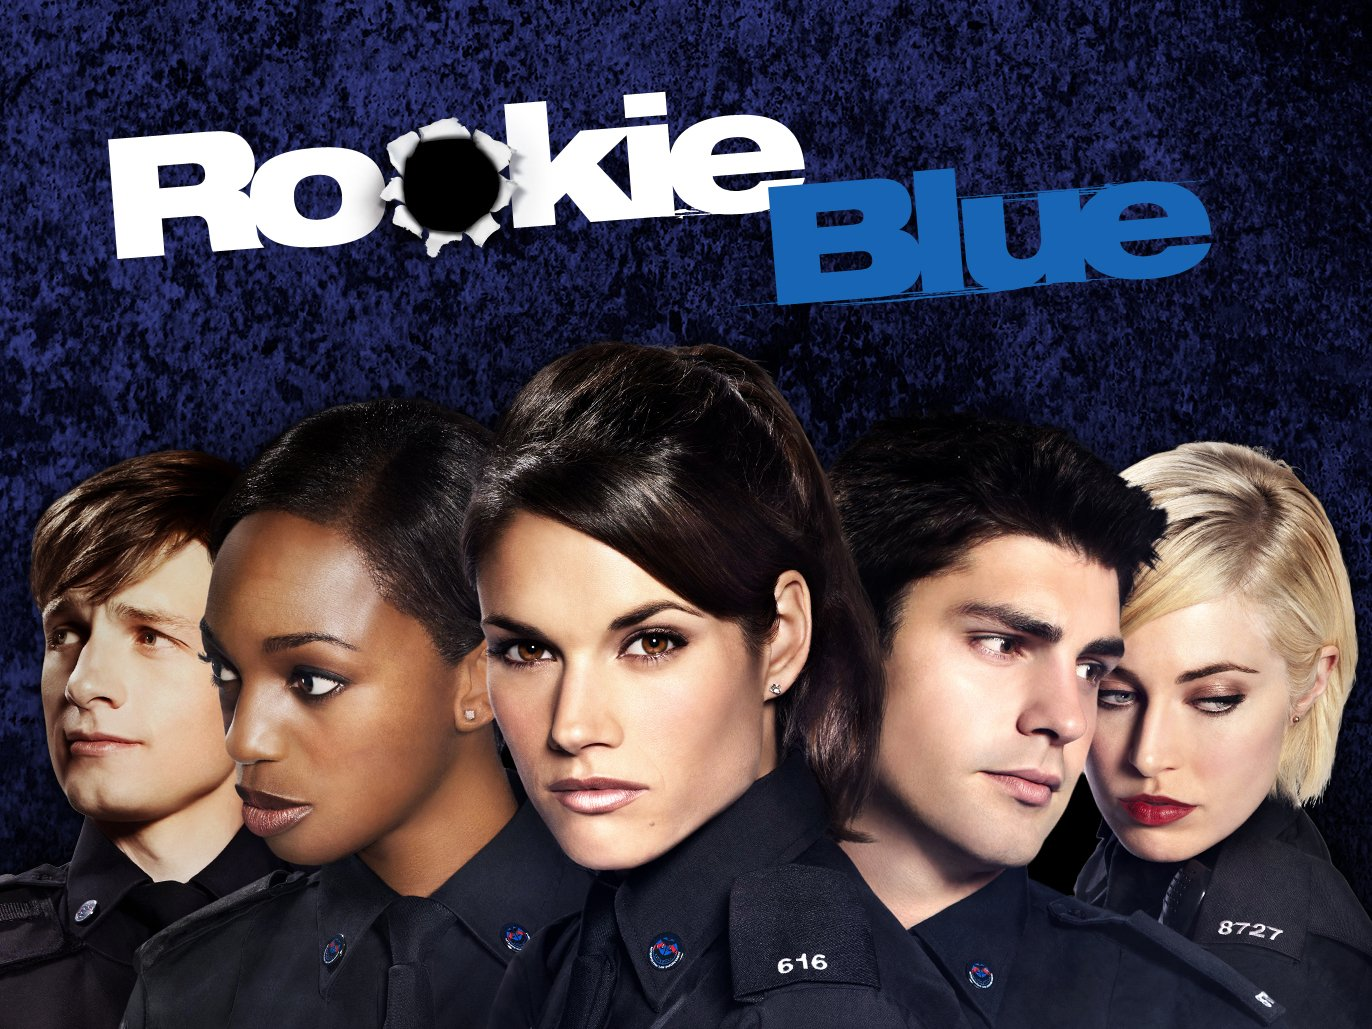 rookie blue stars dating